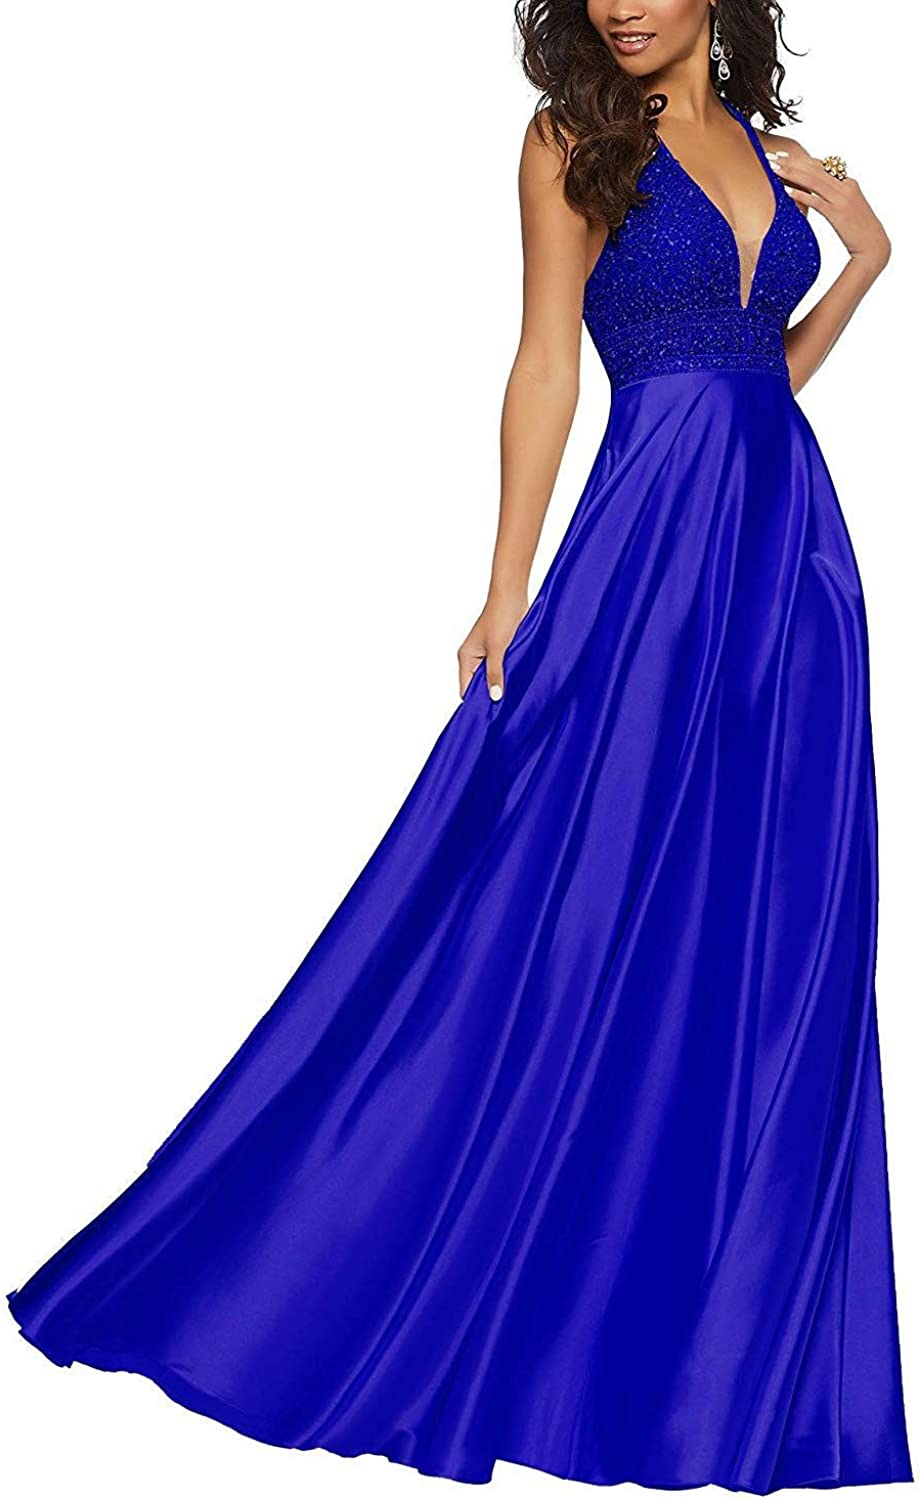 Staypretty Halter Prom Gowns Satin Beaded V Neck Long Formal Women Evening Dresses with Pockets